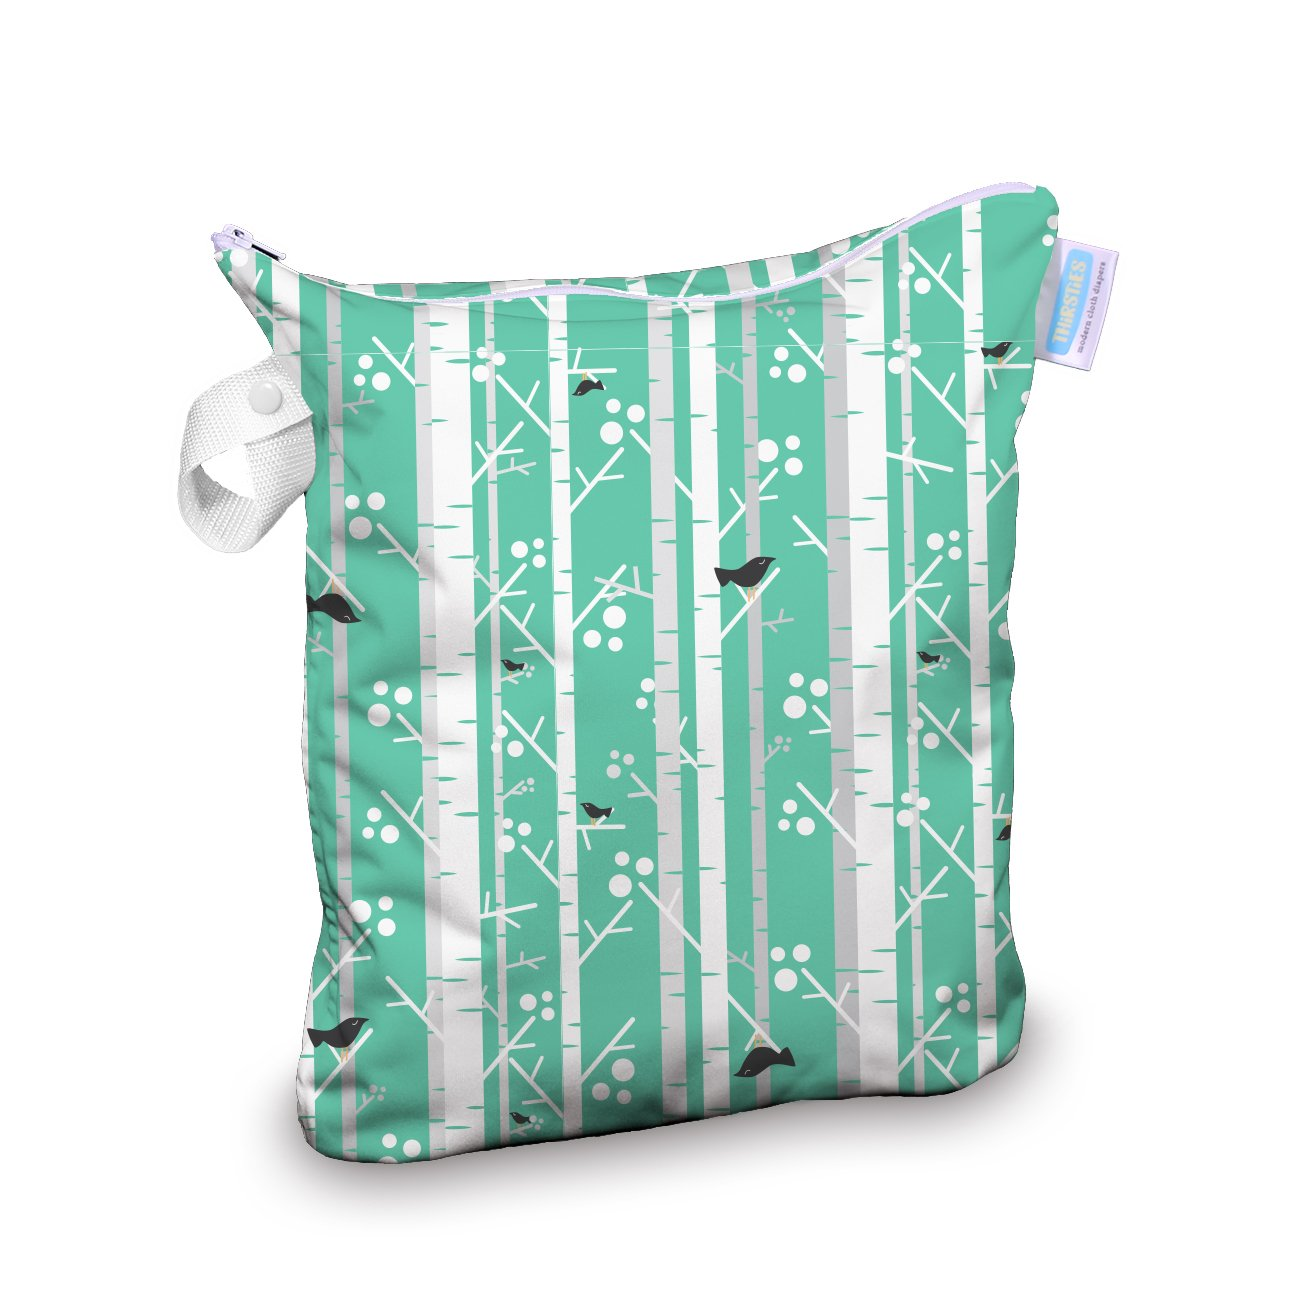 Thirsties Wet Bag, Aspen Grove